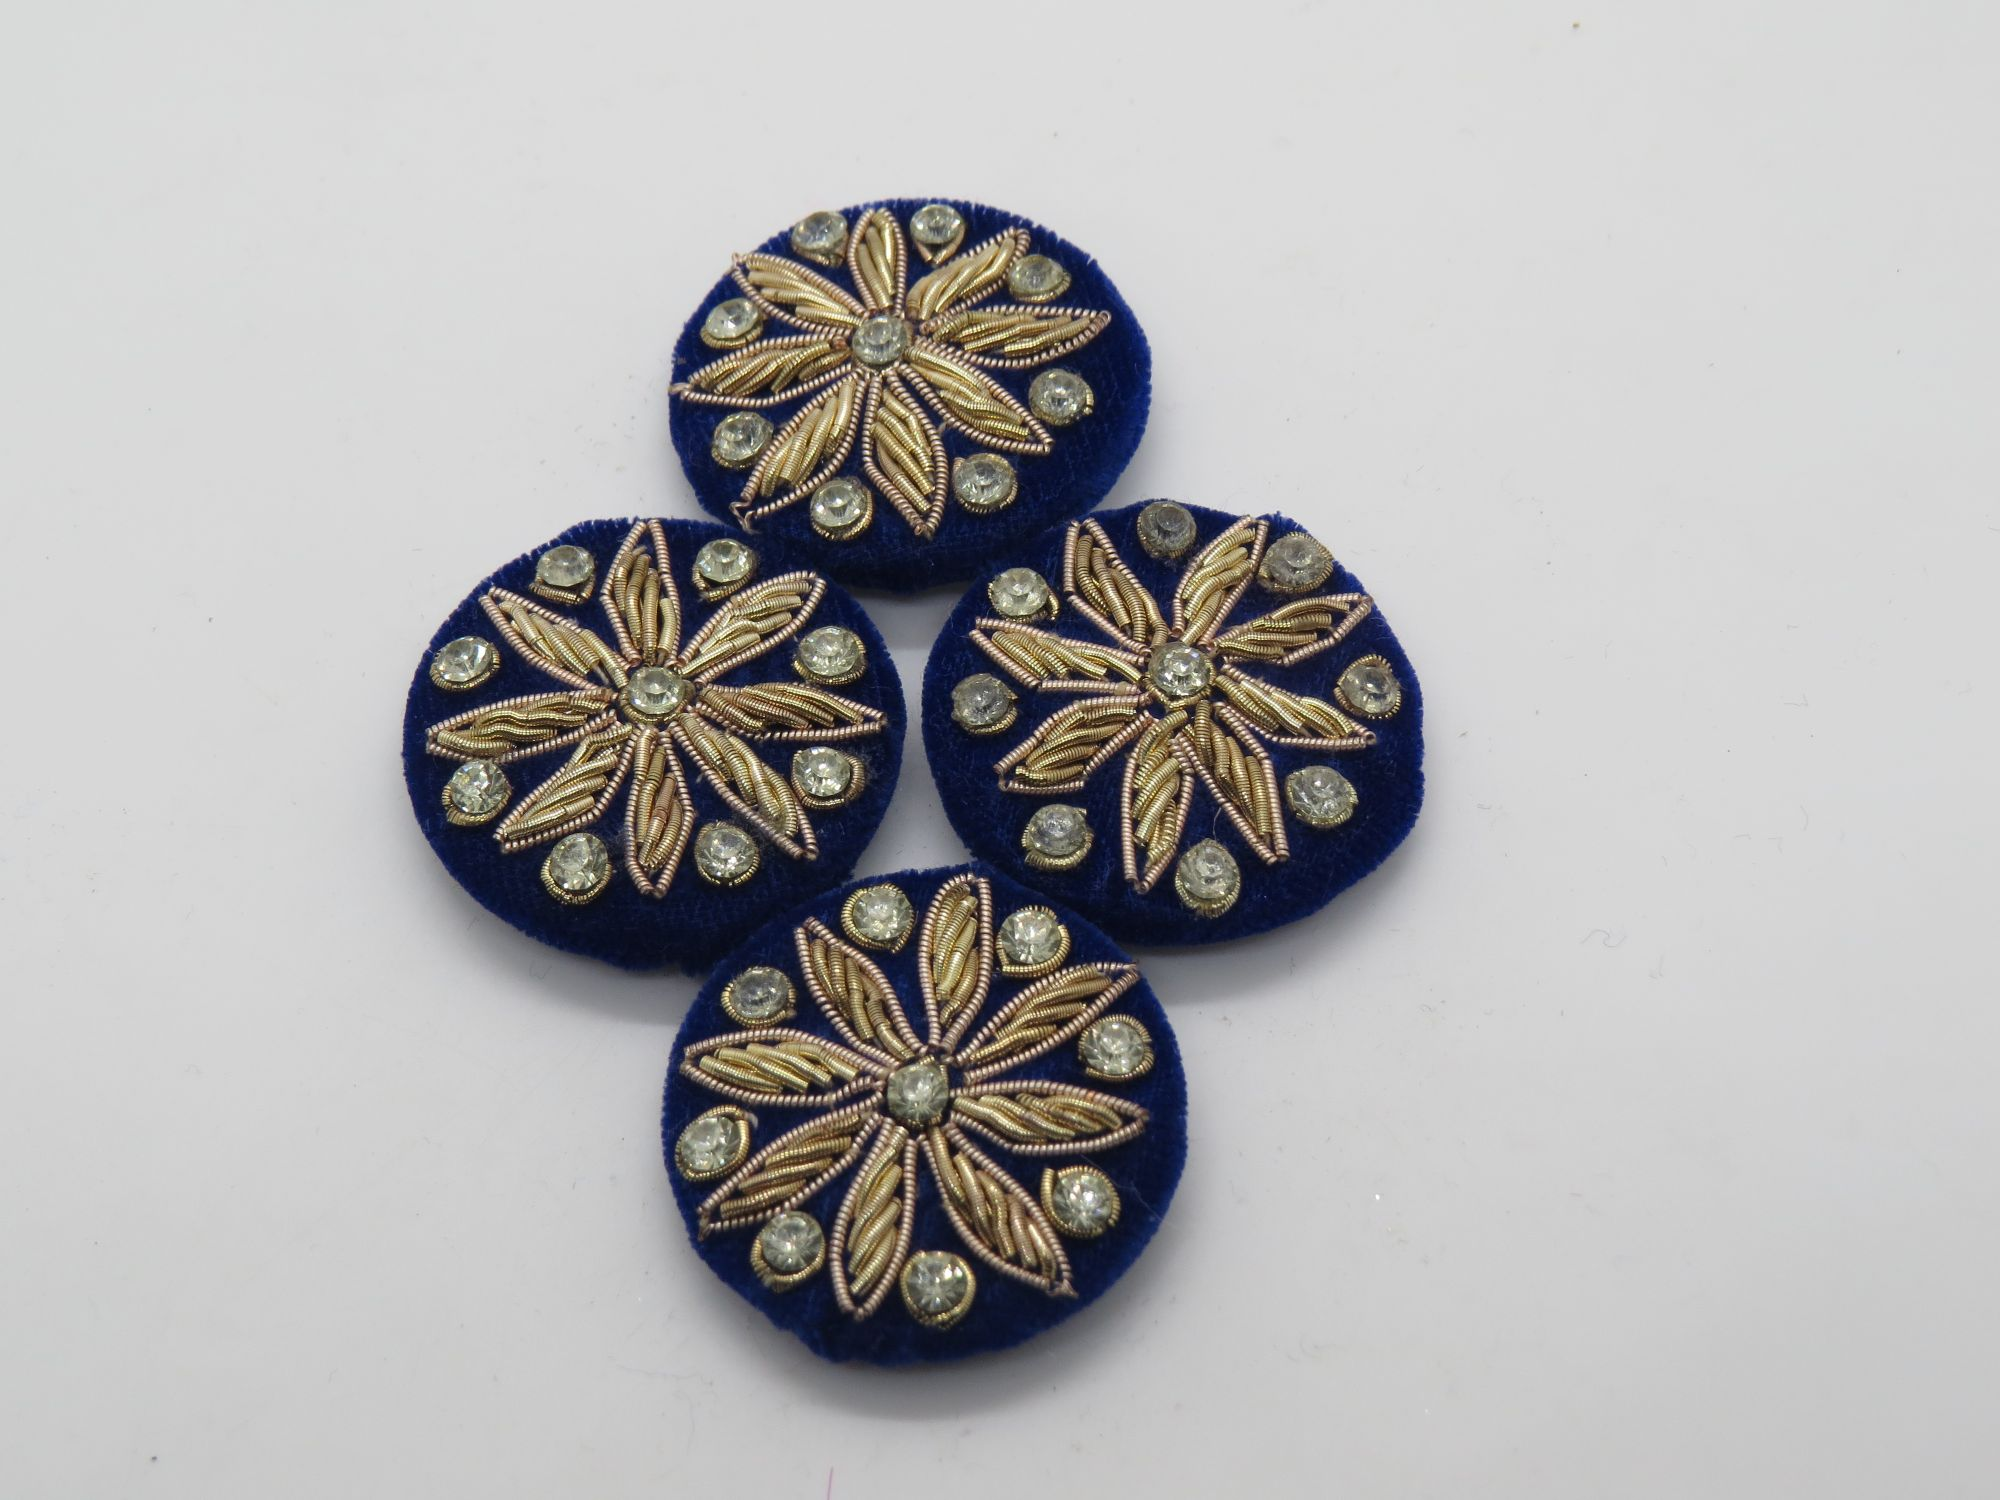 Hand  Stone Zardozi Thred work Embellishment Button Indian Fancy Zari Zardozi Bridesmaids Design Decorative Hand Crafted Fabric Thread Work Sewing Buttons